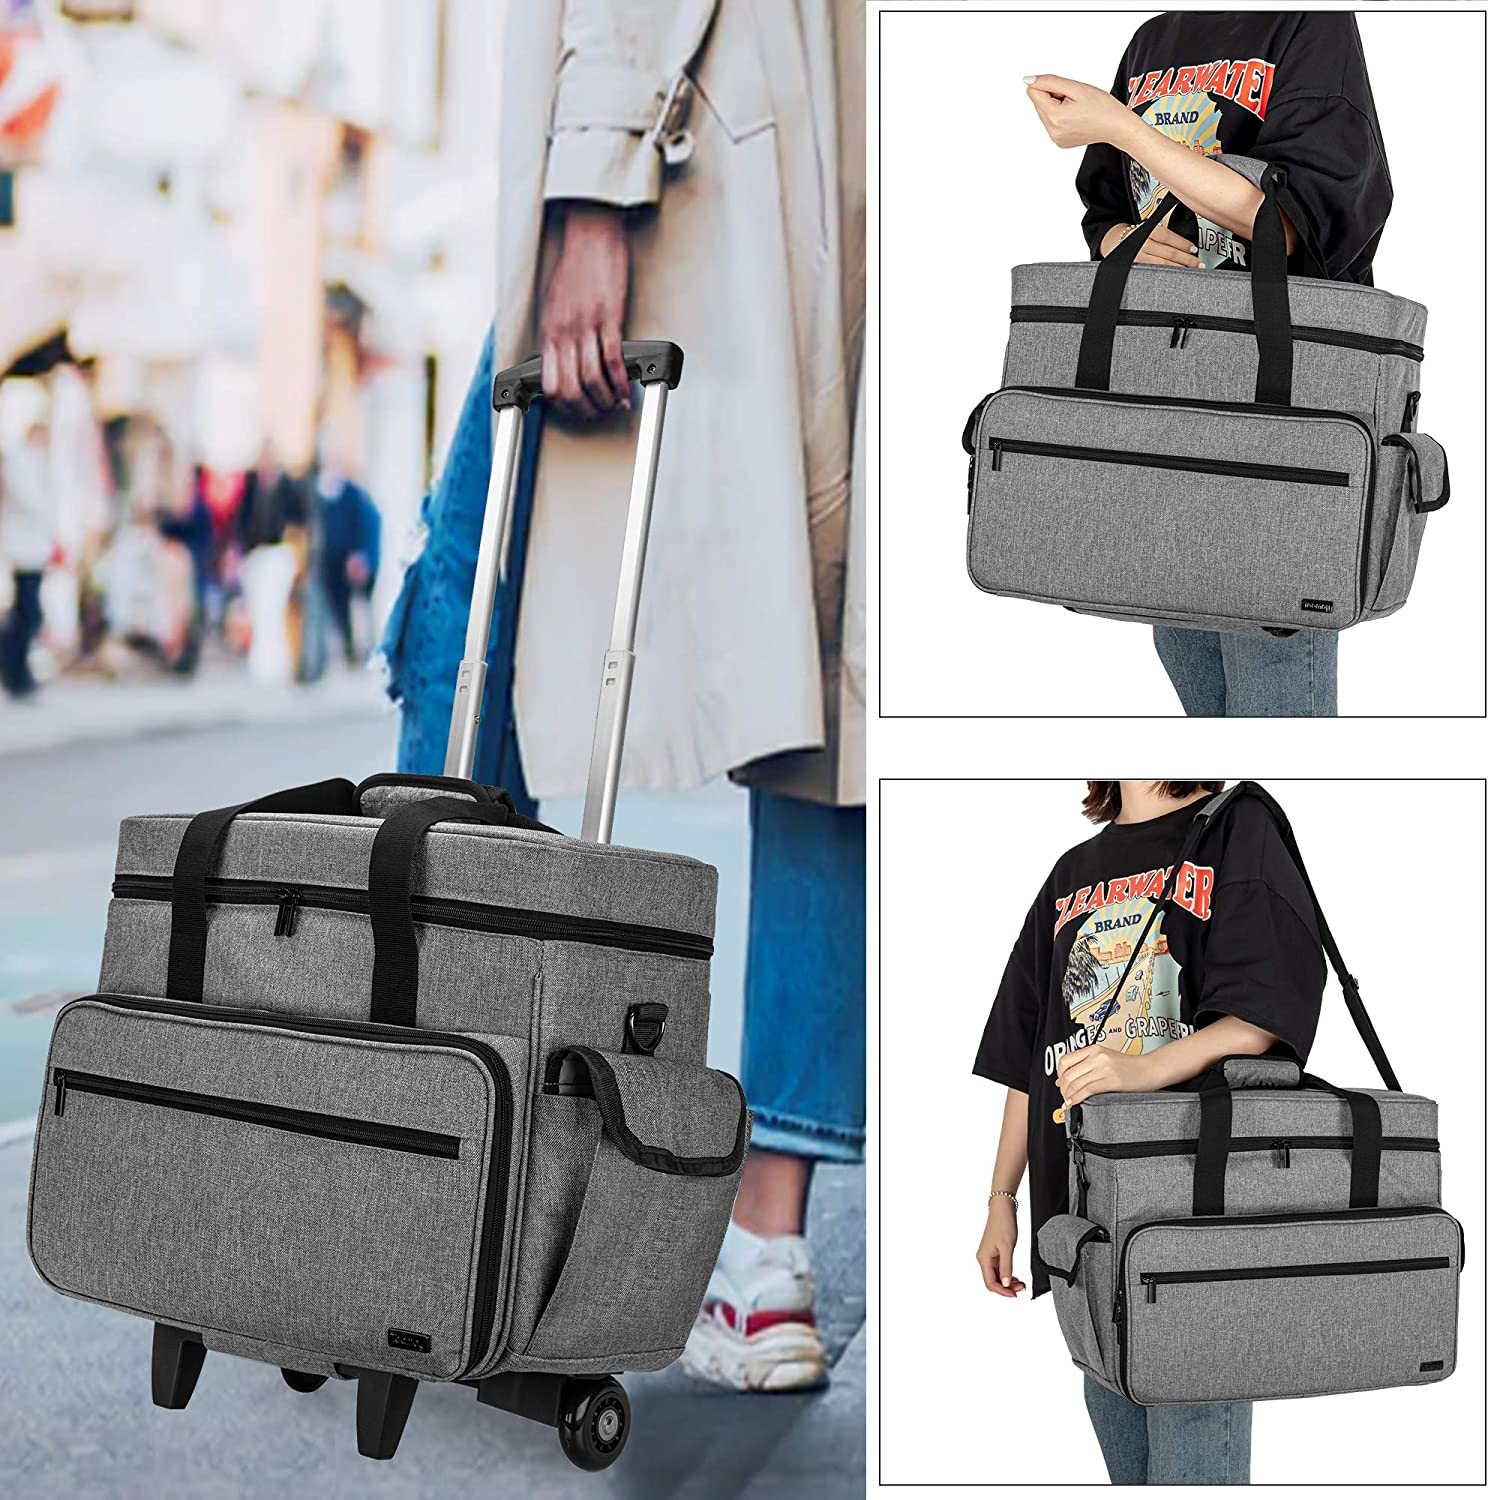 Black Compatible with Singer Brother and Most Standard Machines and Accessories Universal Sewing Machine Carrying Case with Shoulder Strap and Bottom Studs Teamoy Sewing Machine Tote